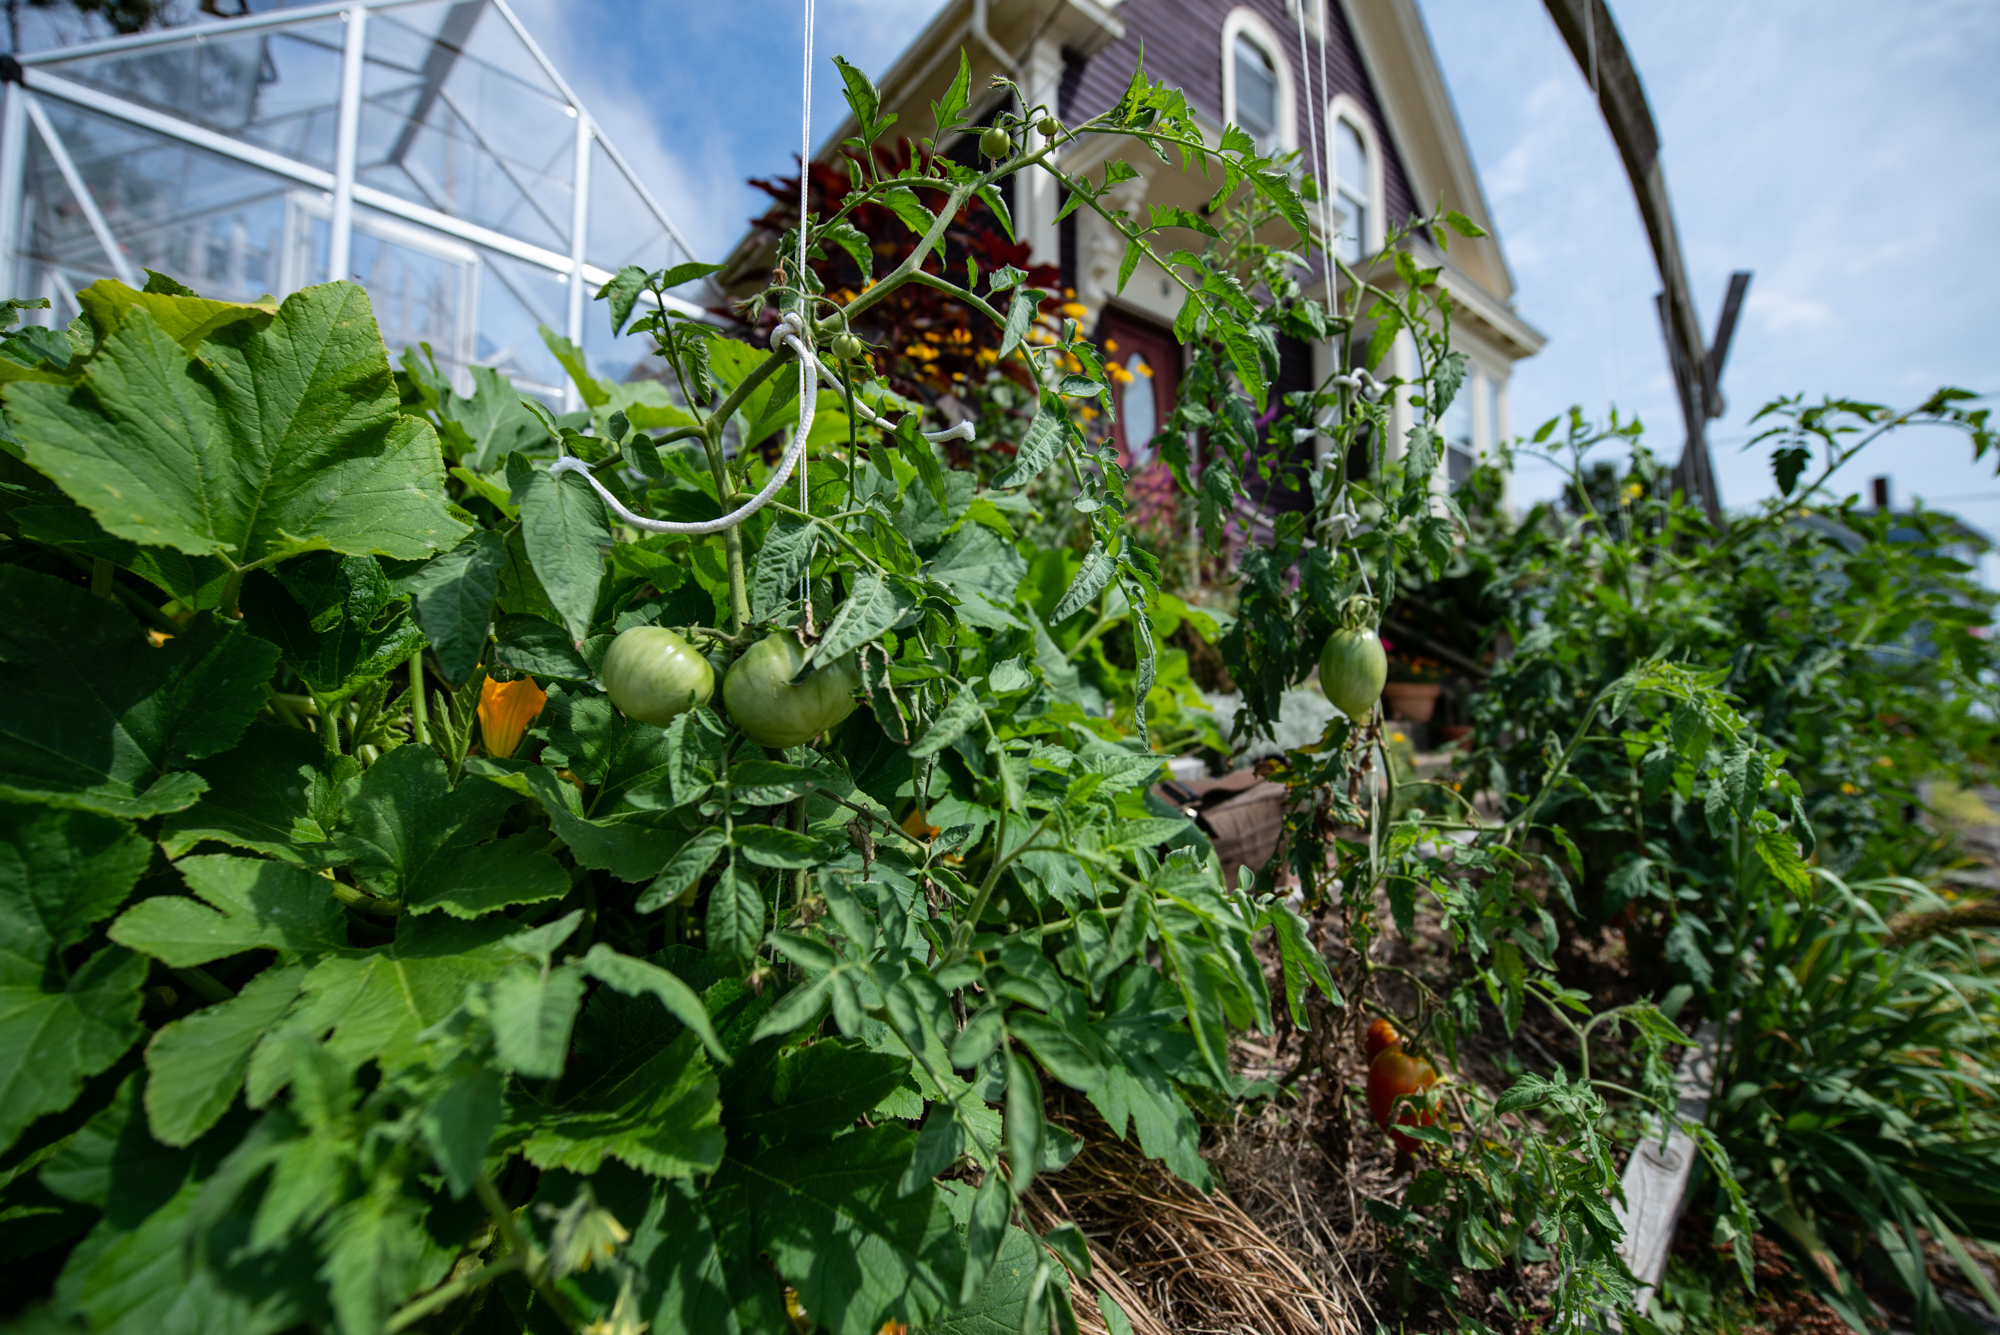 Curb Appeal- The Pedestrian Picking Zone of the family garden (Photo: David Newsom)